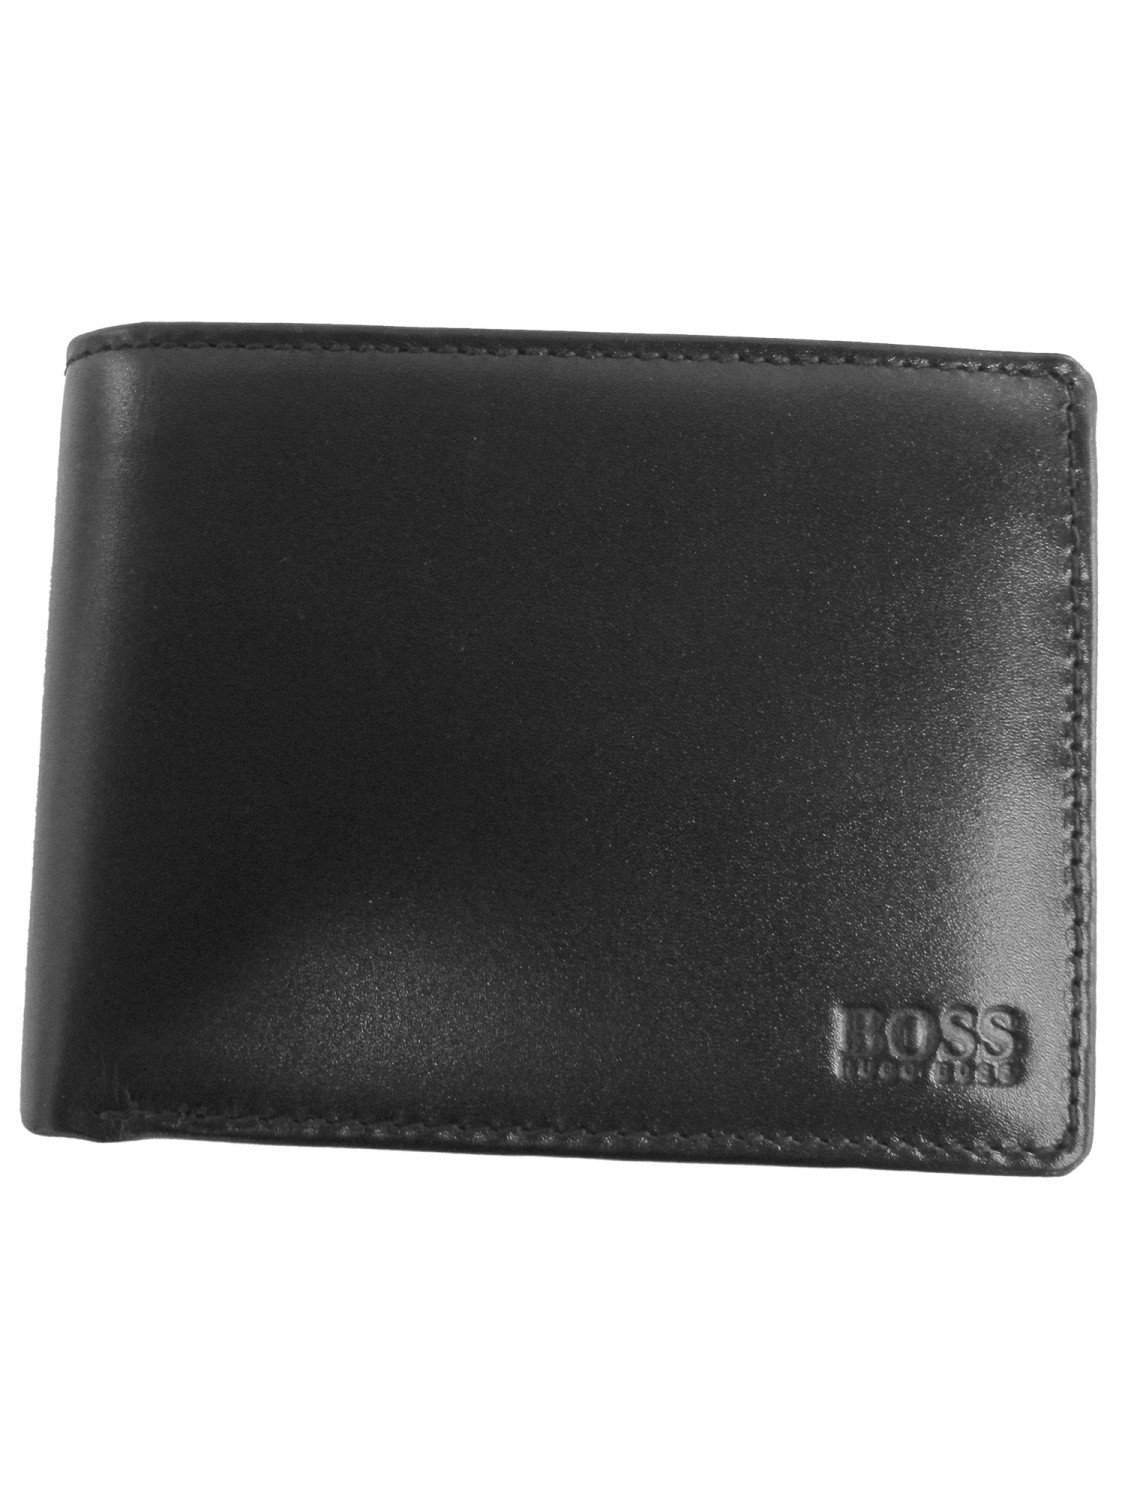 5fde8765ee8 Hugo Boss Arezzo 50128297 Mens Black Trifold Leather Coin Wallet:  Amazon.co.uk: Luggage